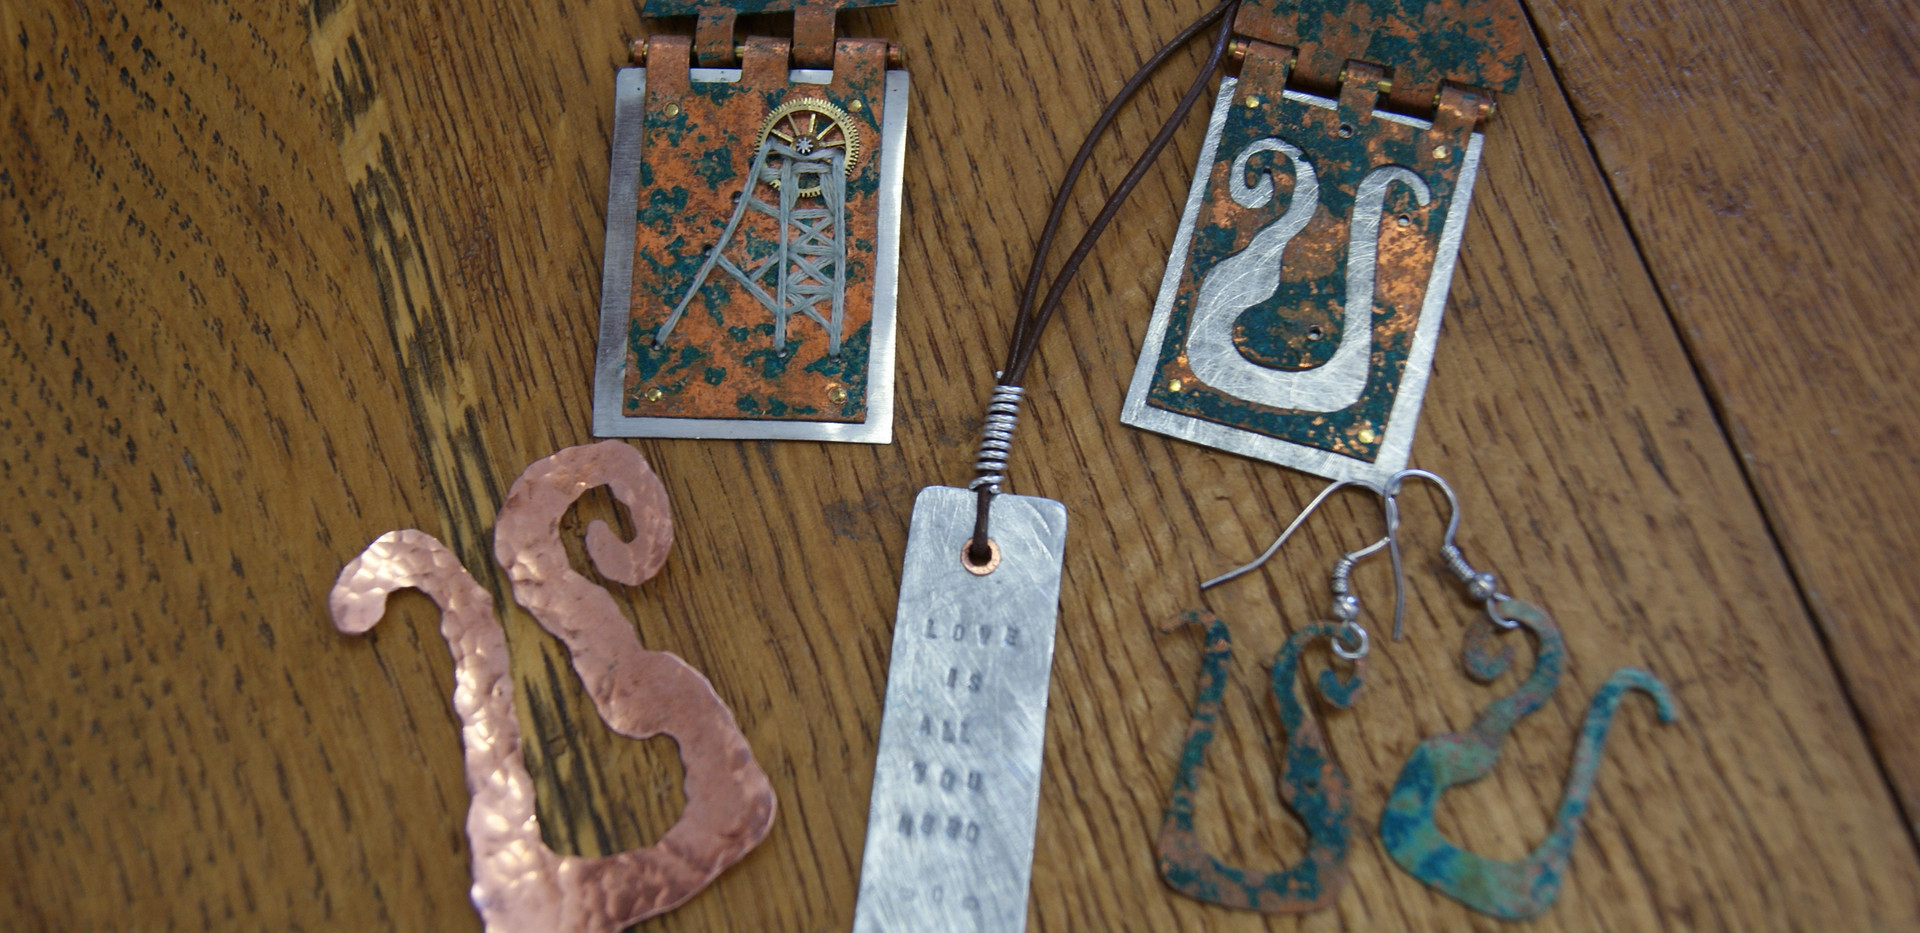 Collection of jewellery made by Bee Pellow